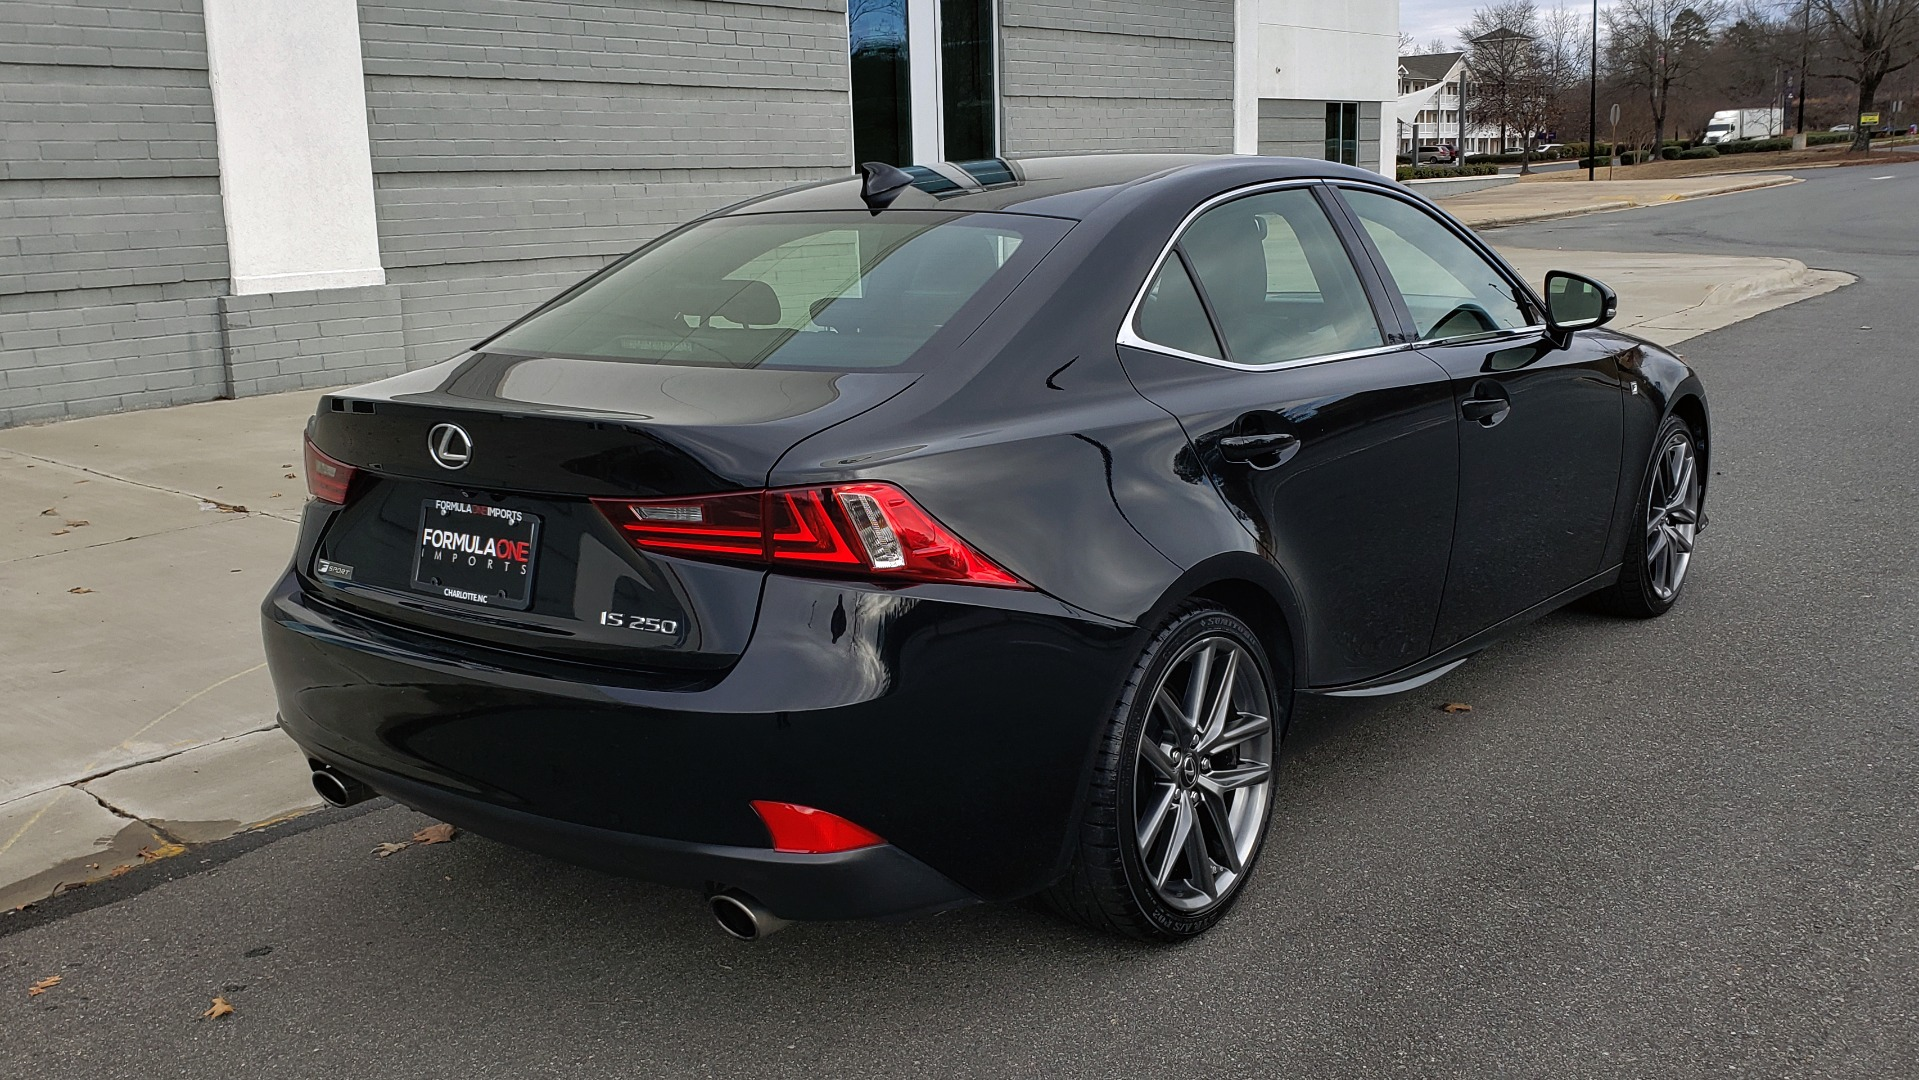 Used 2015 Lexus IS 250 F-SPORT / BLIND SPOT MON / SUNROOF / REARVIEW for sale Sold at Formula Imports in Charlotte NC 28227 6